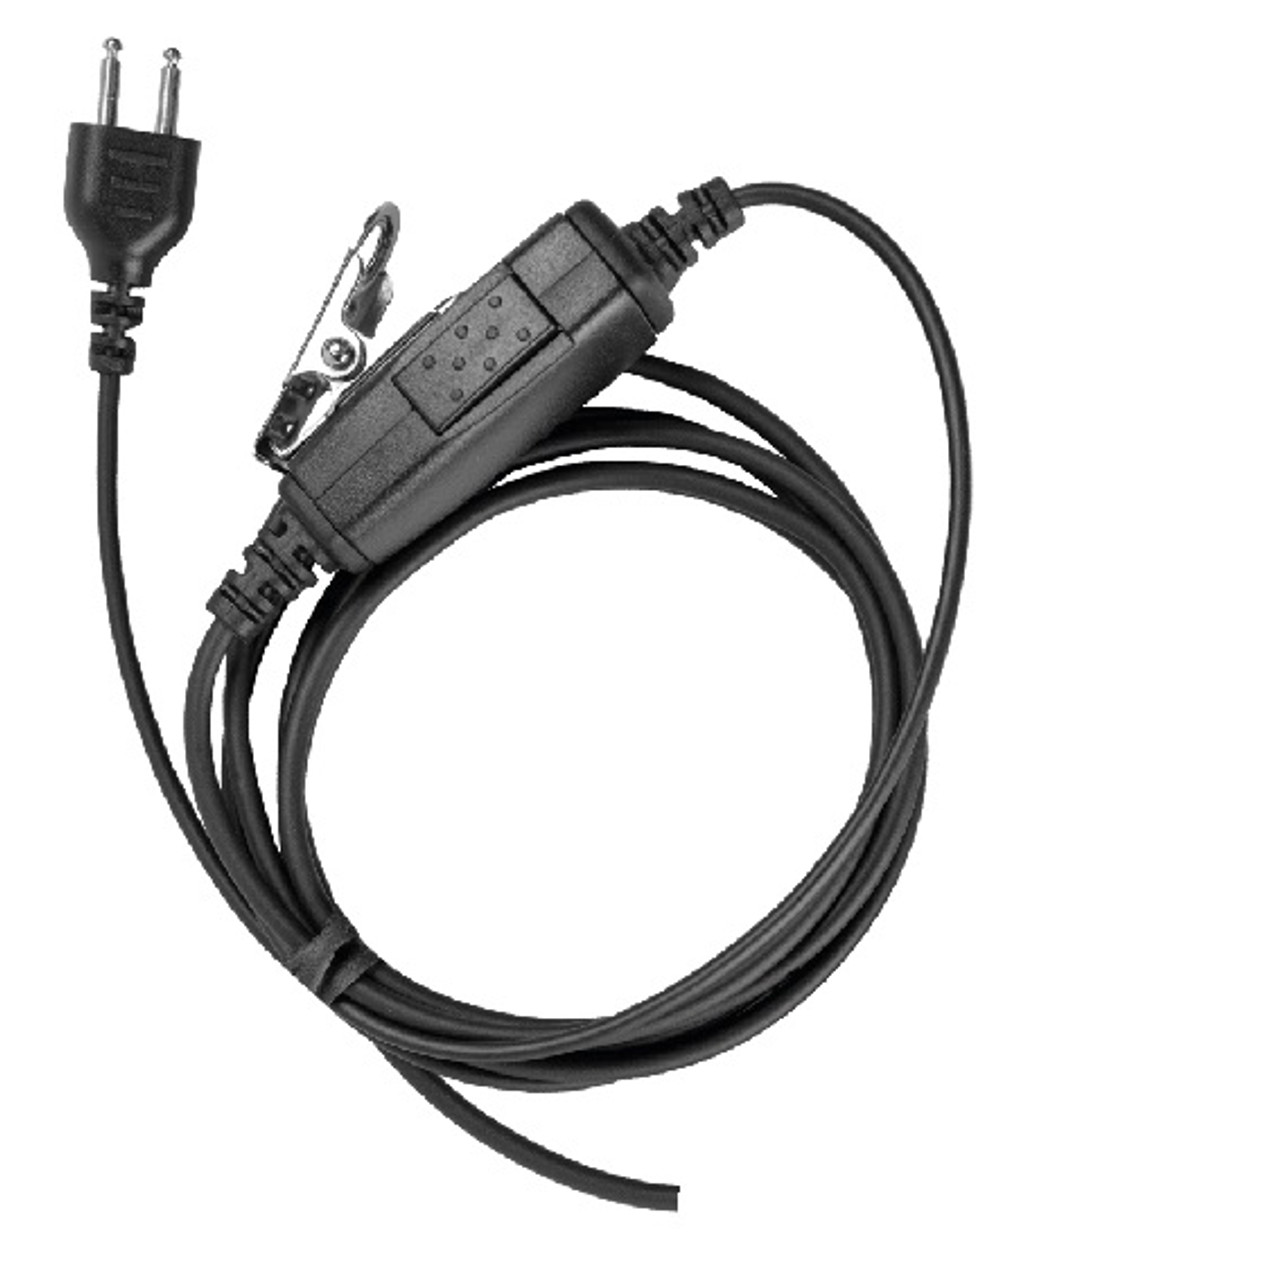 Snap Lock Push to Talk Mic Cable